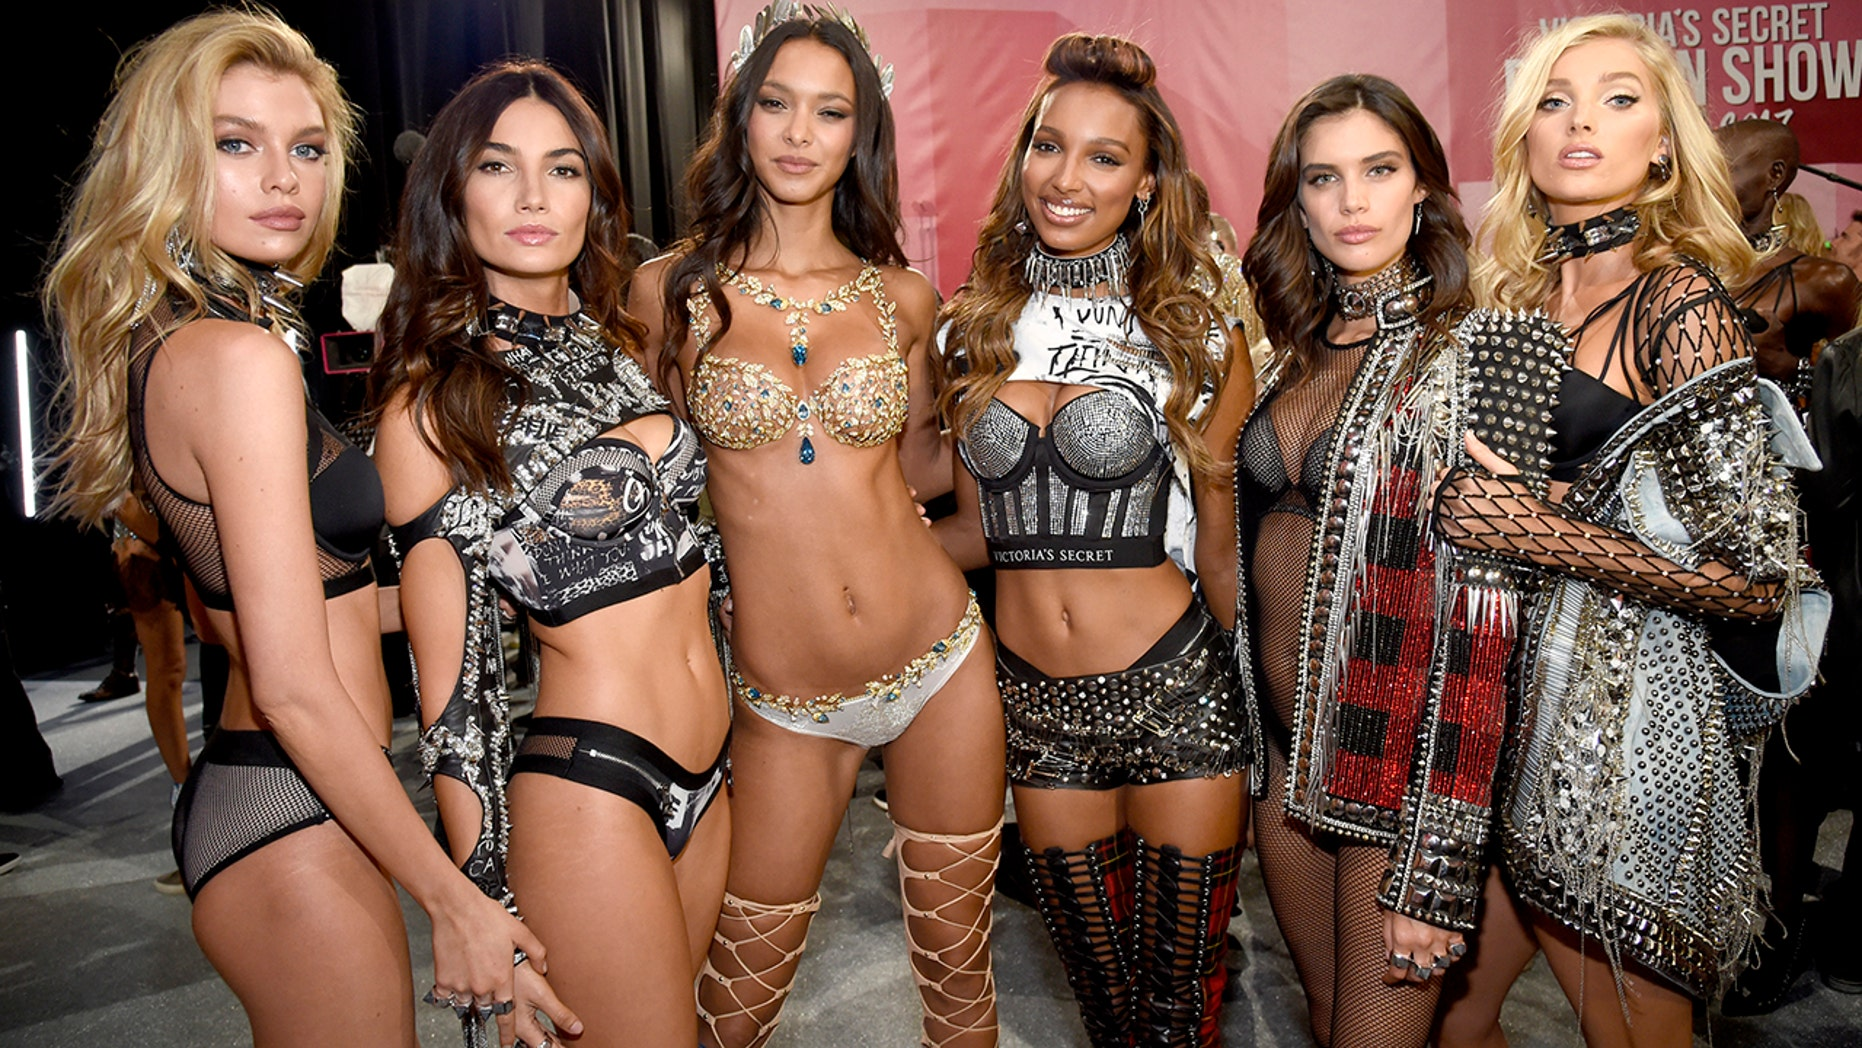 From l-r: Stella Maxwell, Lily Aldridge, Lais Ribeiro, Jasmine Tookes, Sara Sampaio and Elsa Hosk pose backstage during 2017 Victoria's Secret Fashion Show In Shanghai at Mercedes-Benz Arena on November 20, 2017 in Shanghai, China.